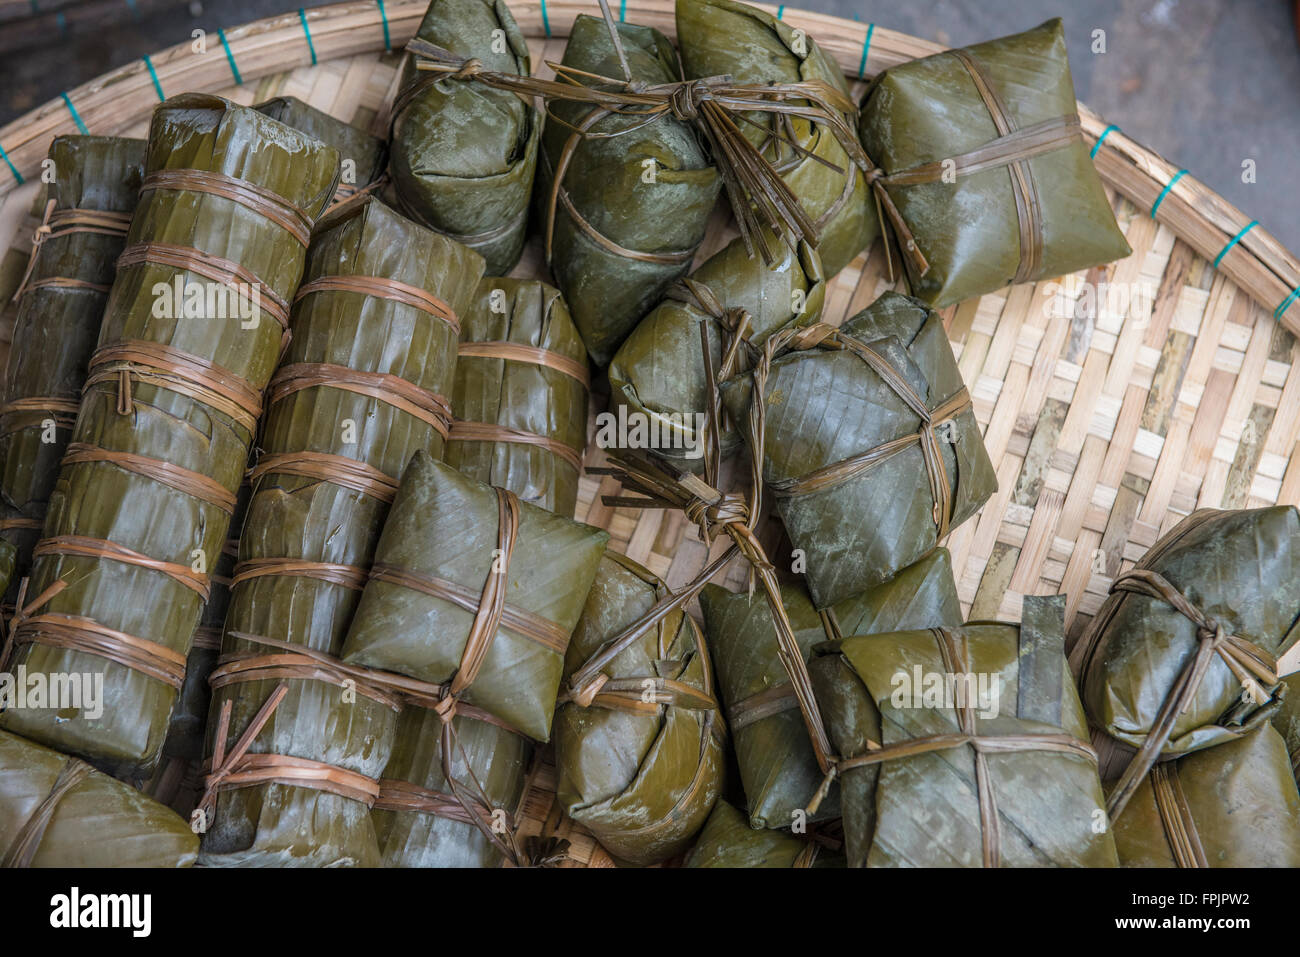 Vietnamese Sticky Rice Cakes For The New Year Tet Called Banh Chung Stock Photo Alamy